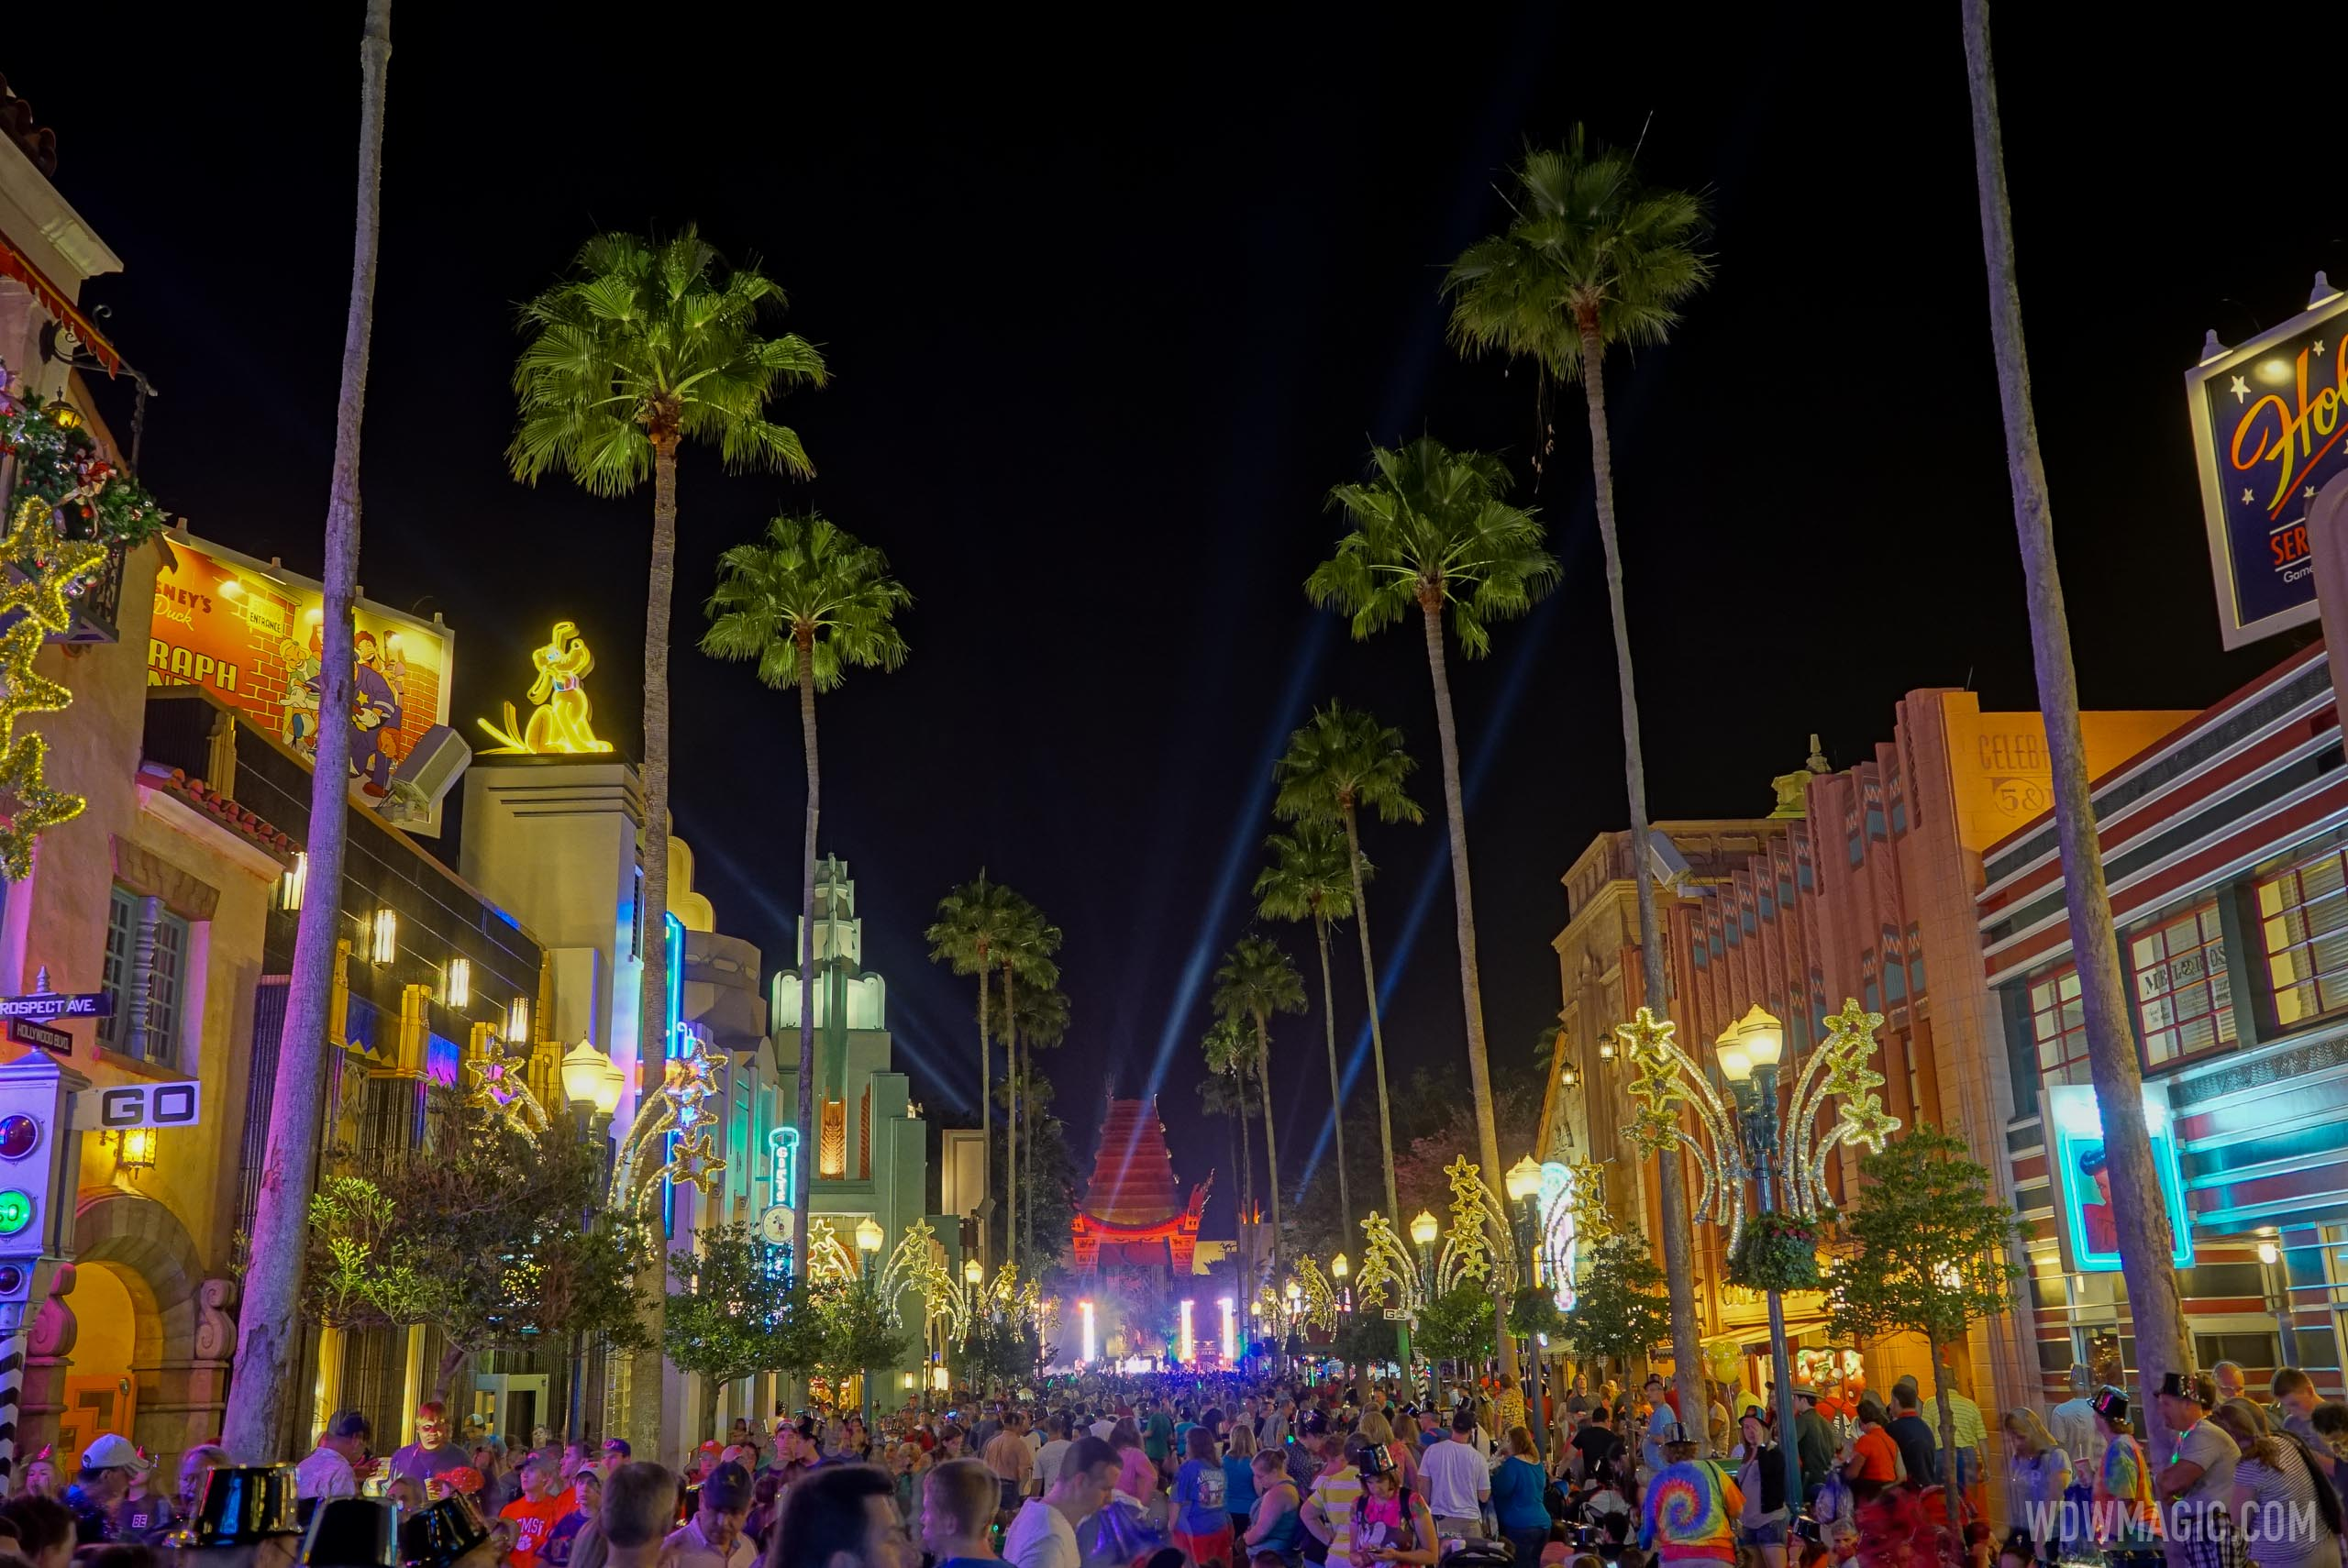 Holidays-at-Disneys-Hollywood-Studios_Full_40431.jpg